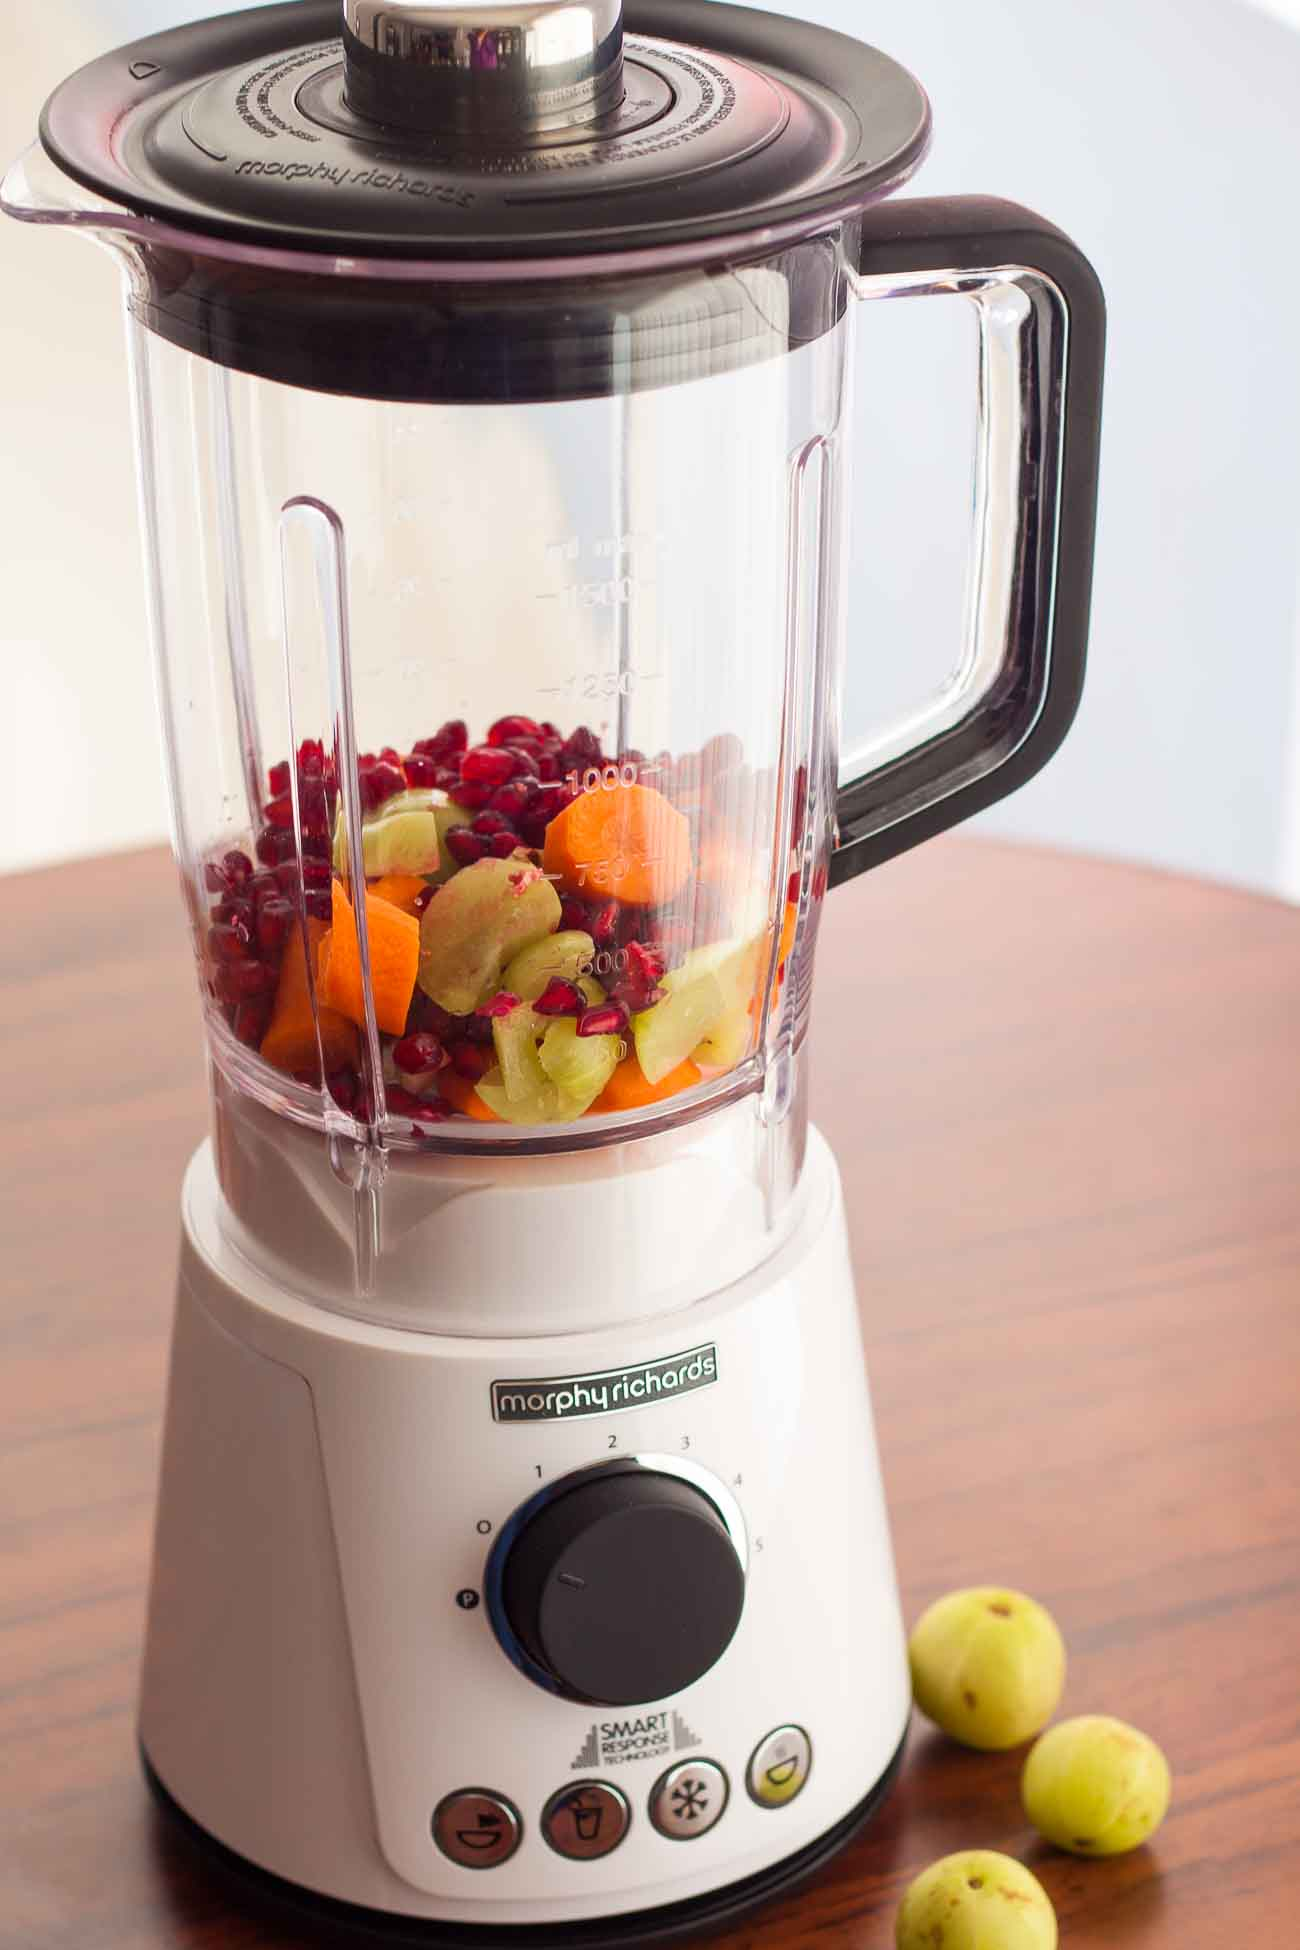 Morphy Richards Total Control Blender Carrot Alma Pomegranate Juice Recipe 3